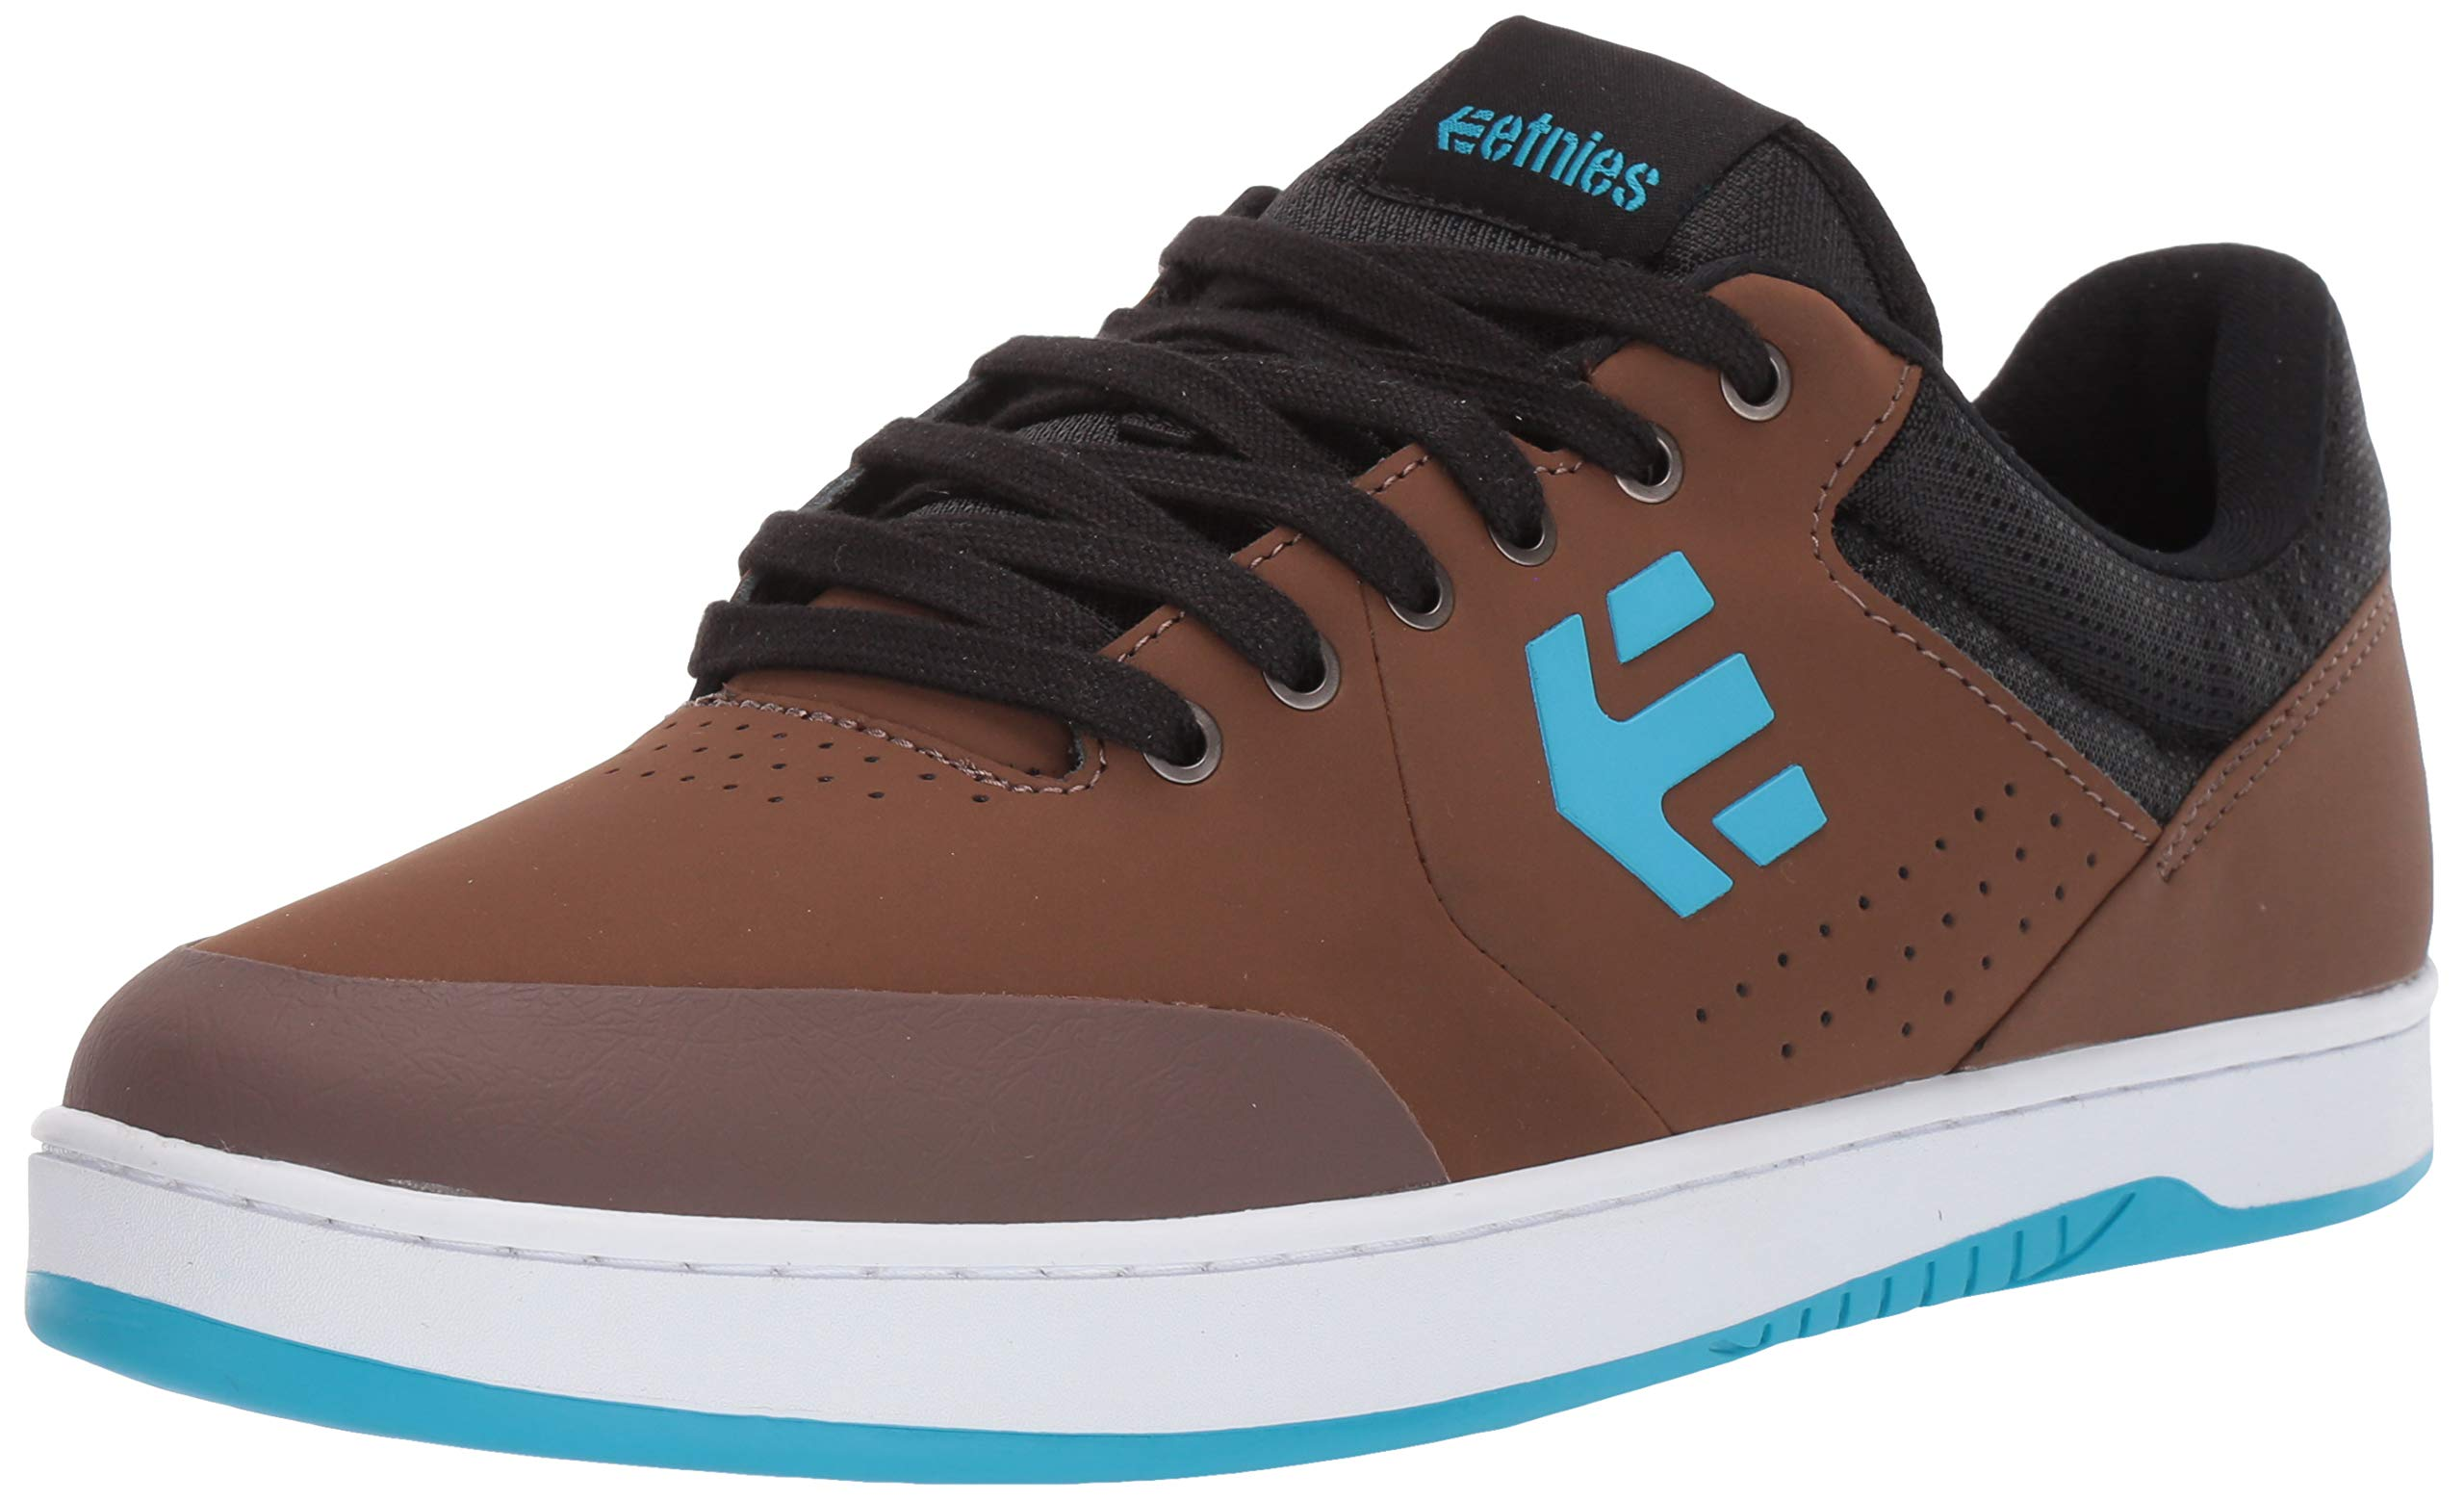 Etnies Men's Marana Crank Skate Shoe Brown/Blue 8 Medium US by Etnies